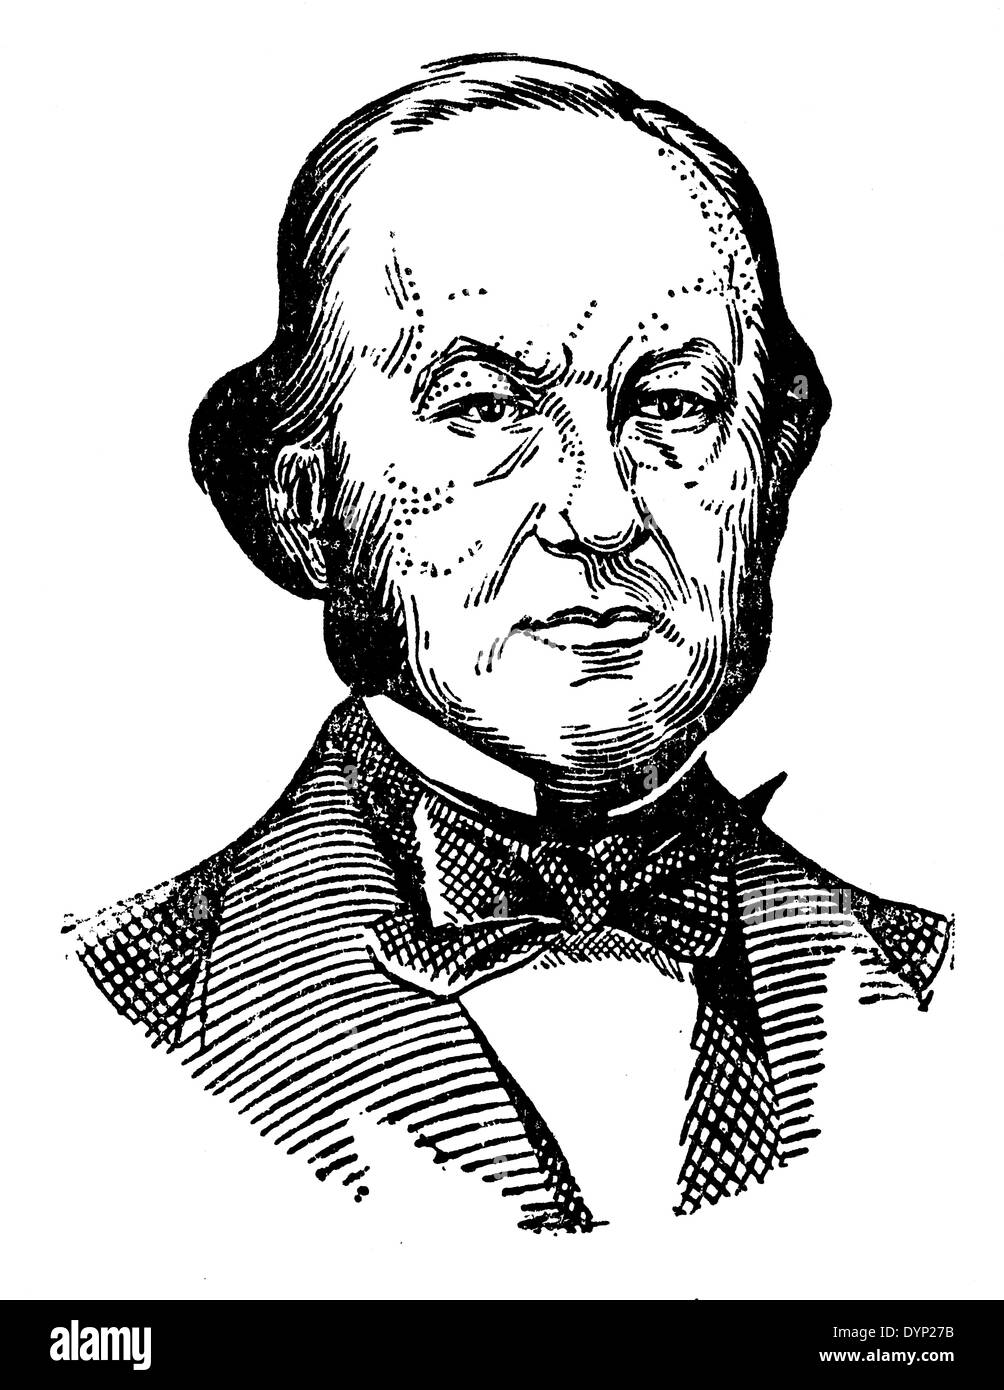 Claude Bernard (1813-1878), French physiologist, illustration from Soviet encyclopedia, 1927 - Stock Image